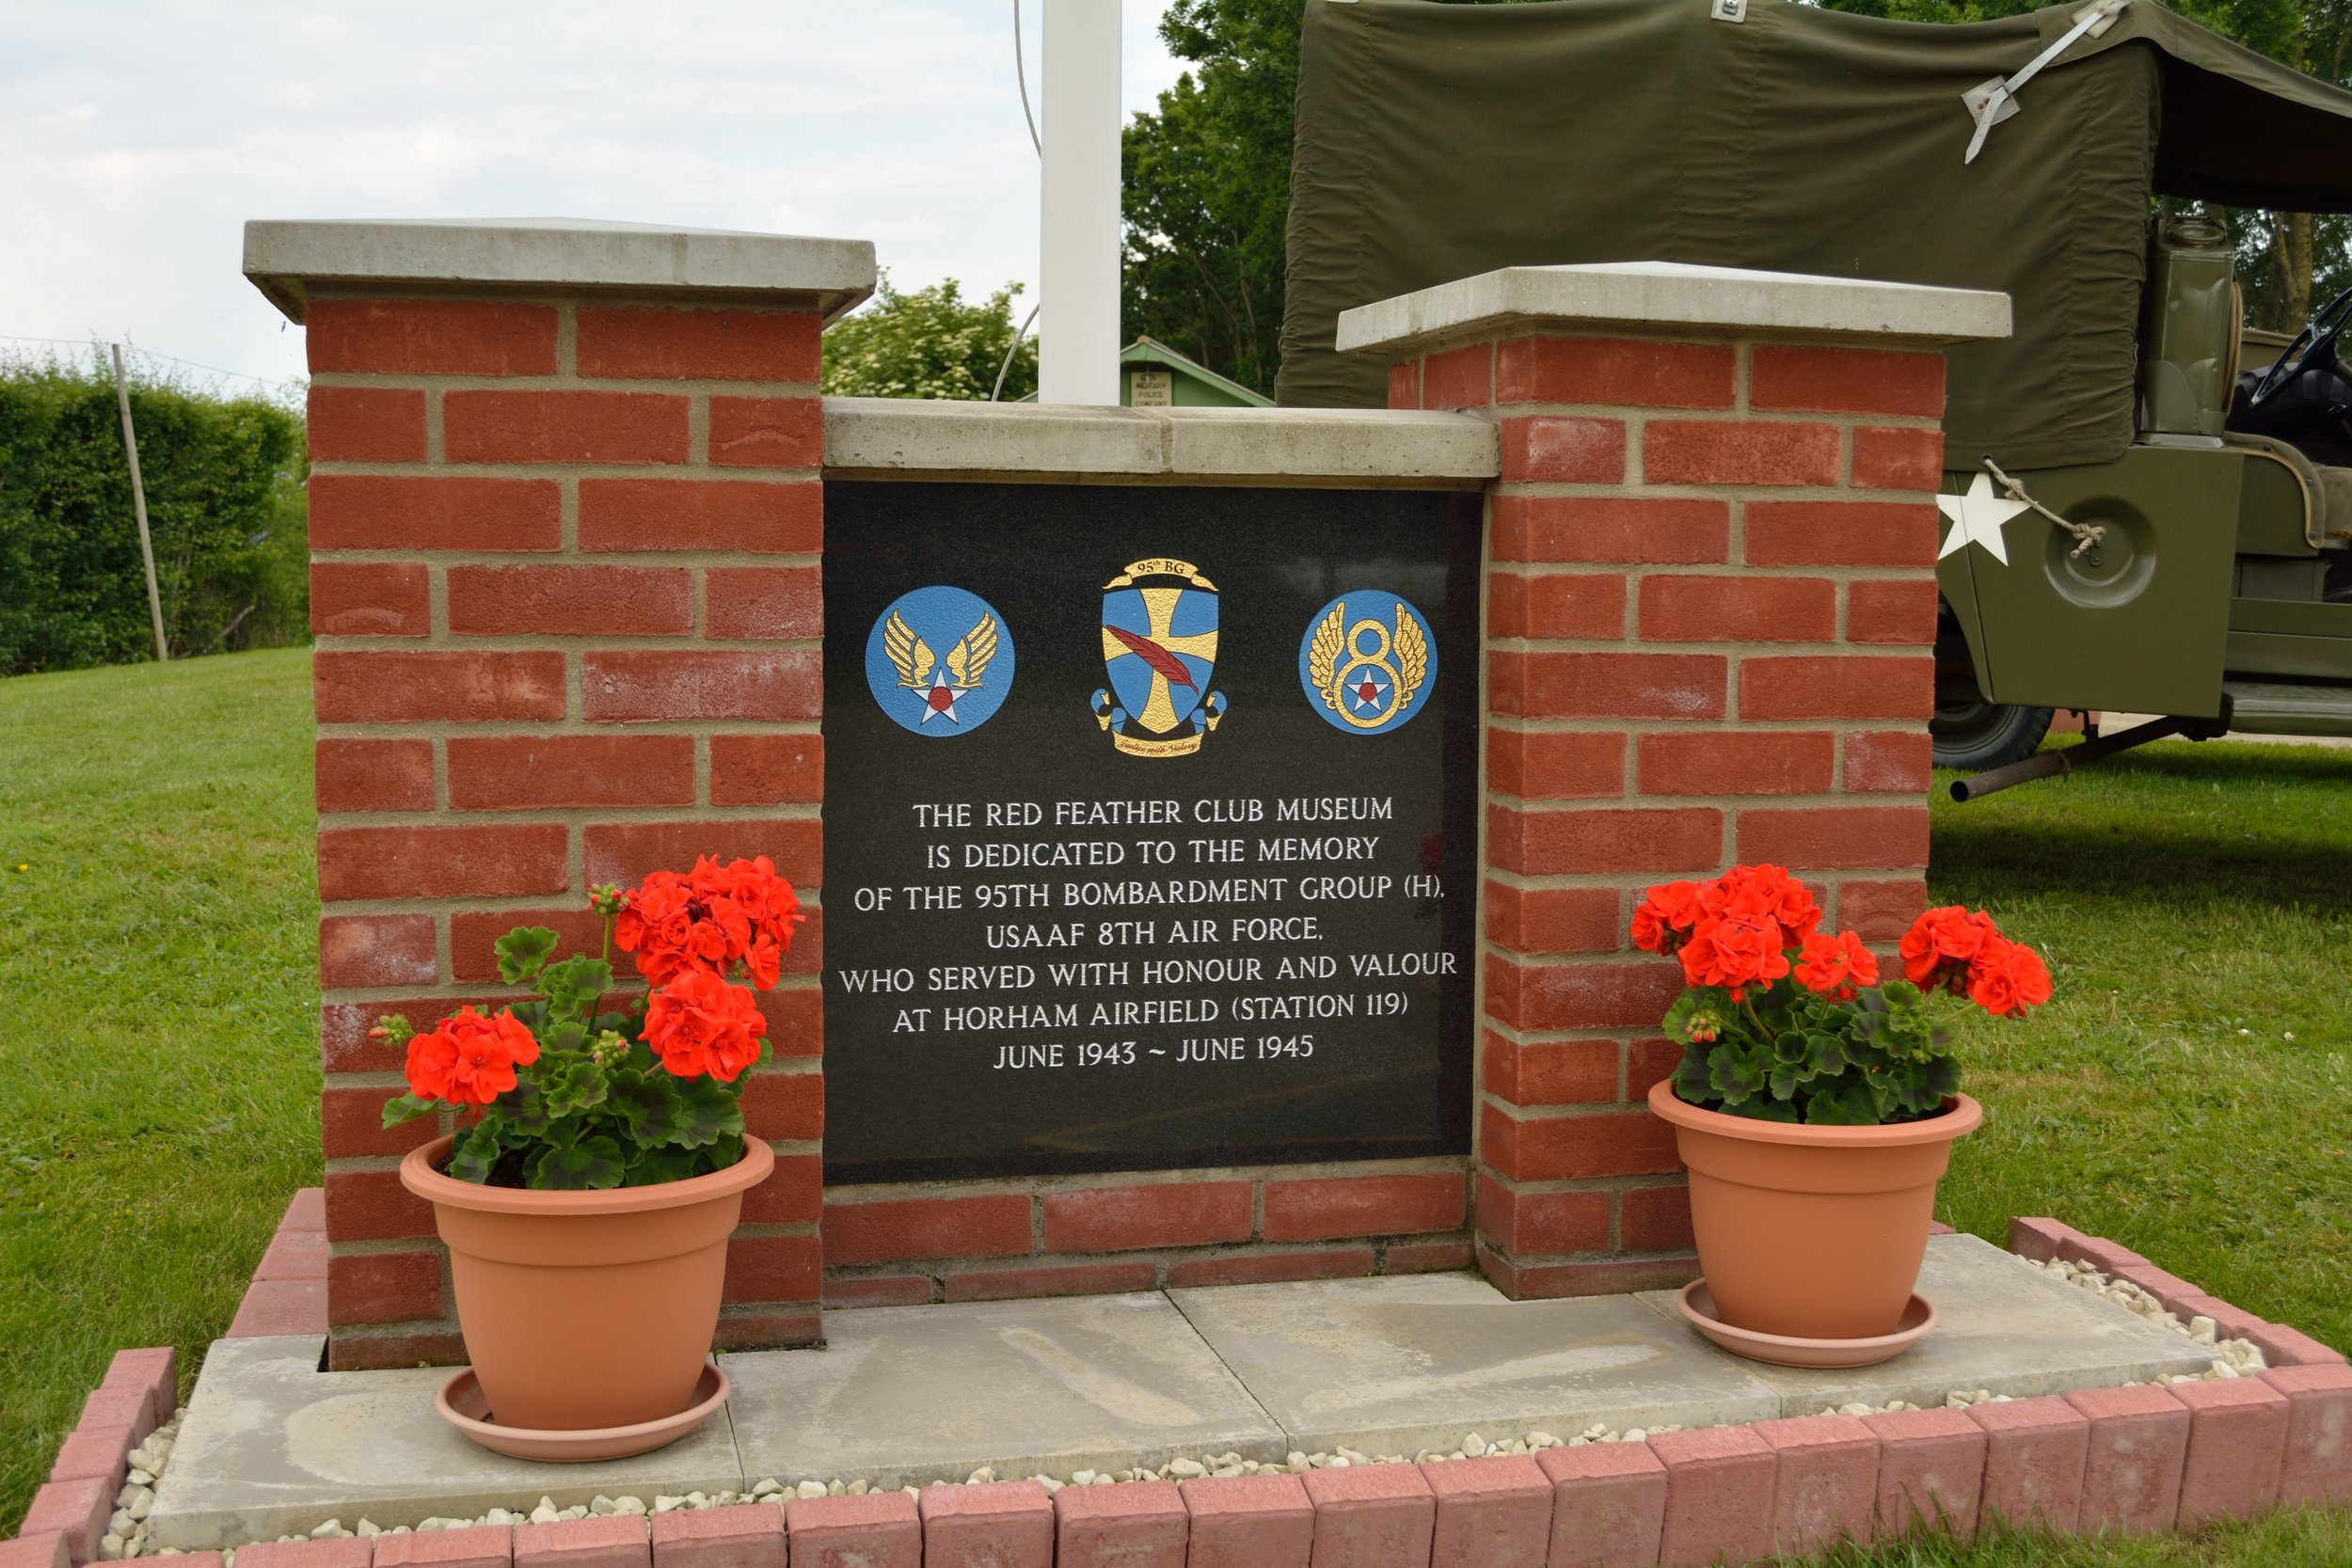 A memorial outside the museum where my grandpa was stationed during WW2